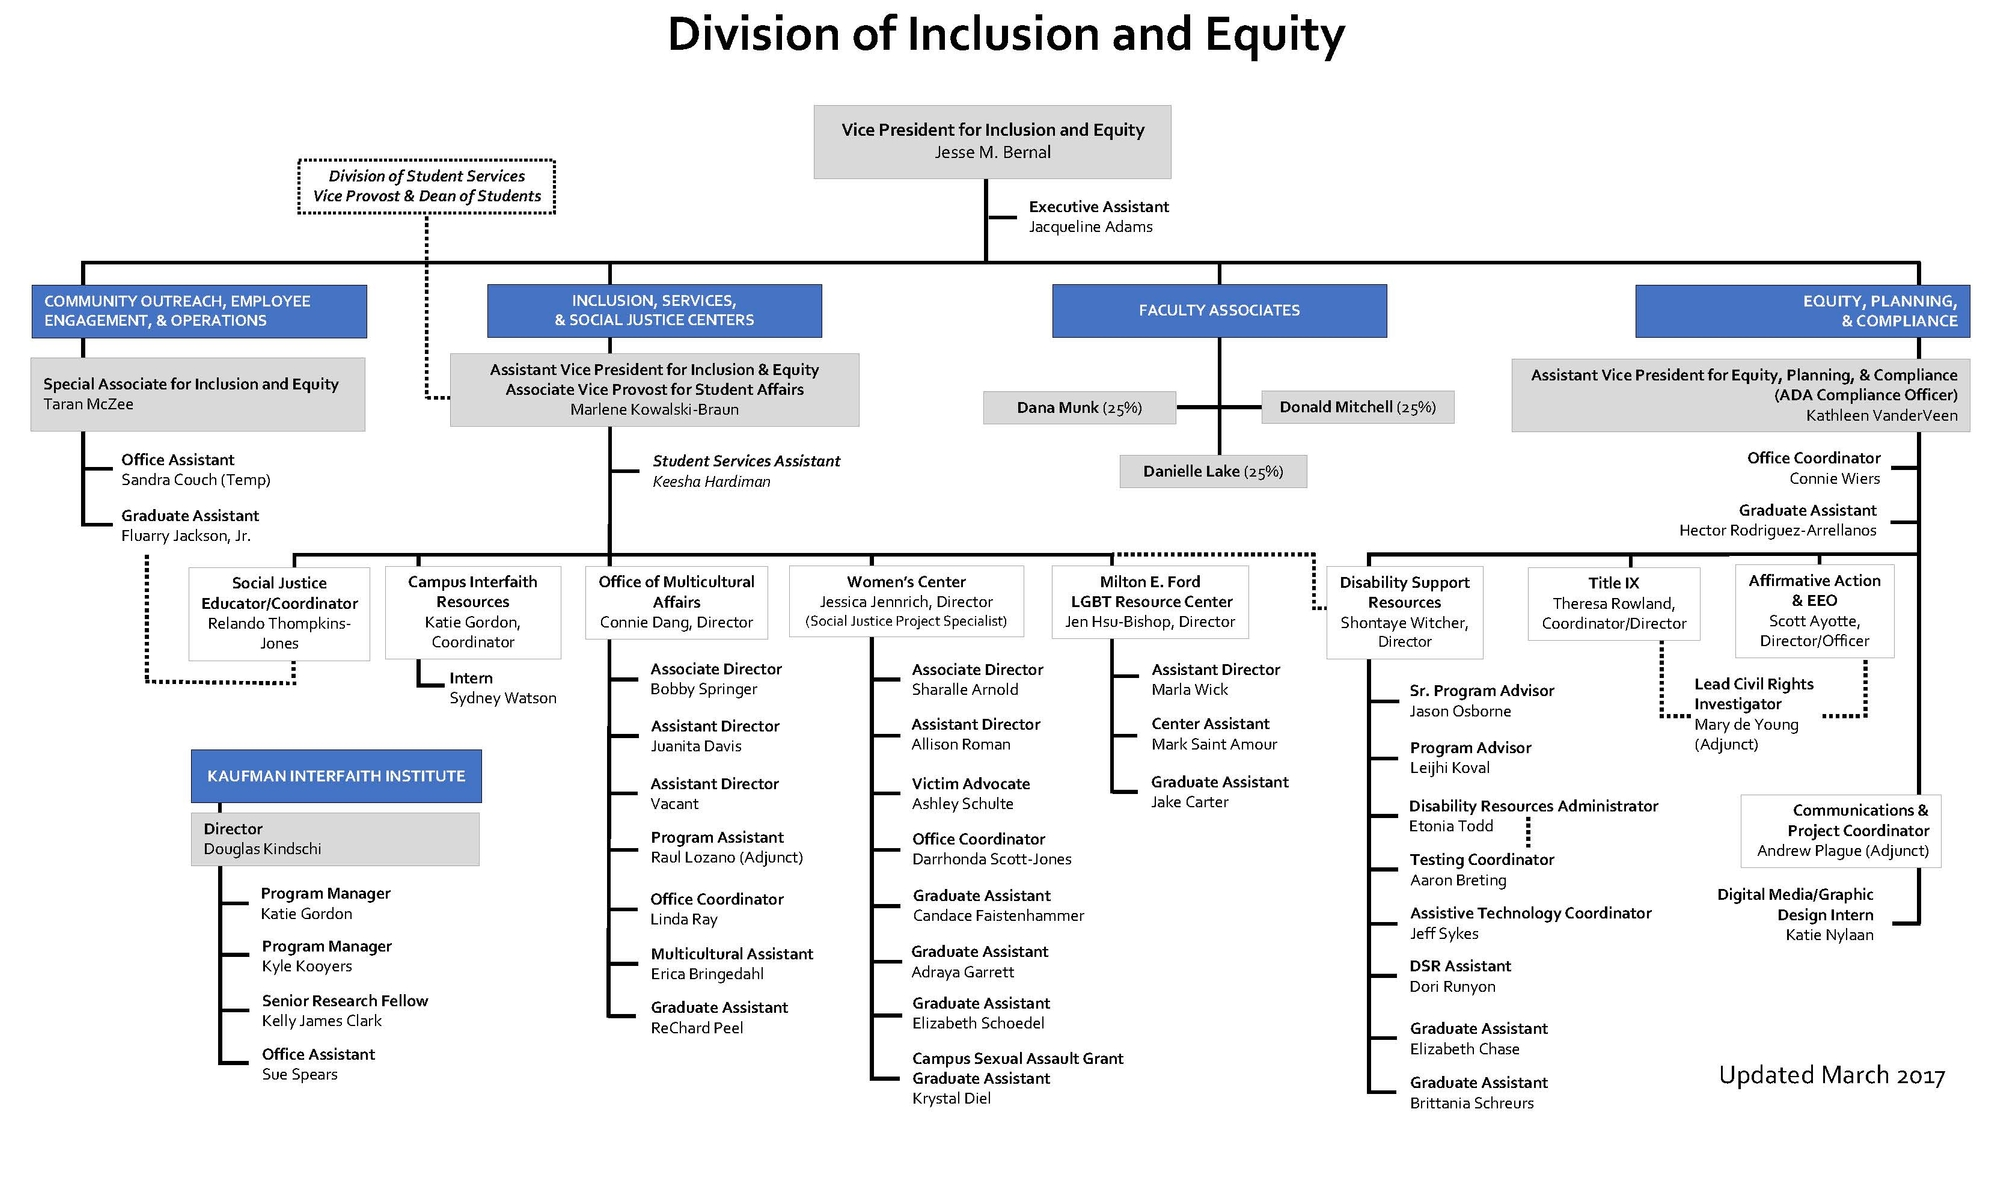 Inclusion and Equity Organizational Chart